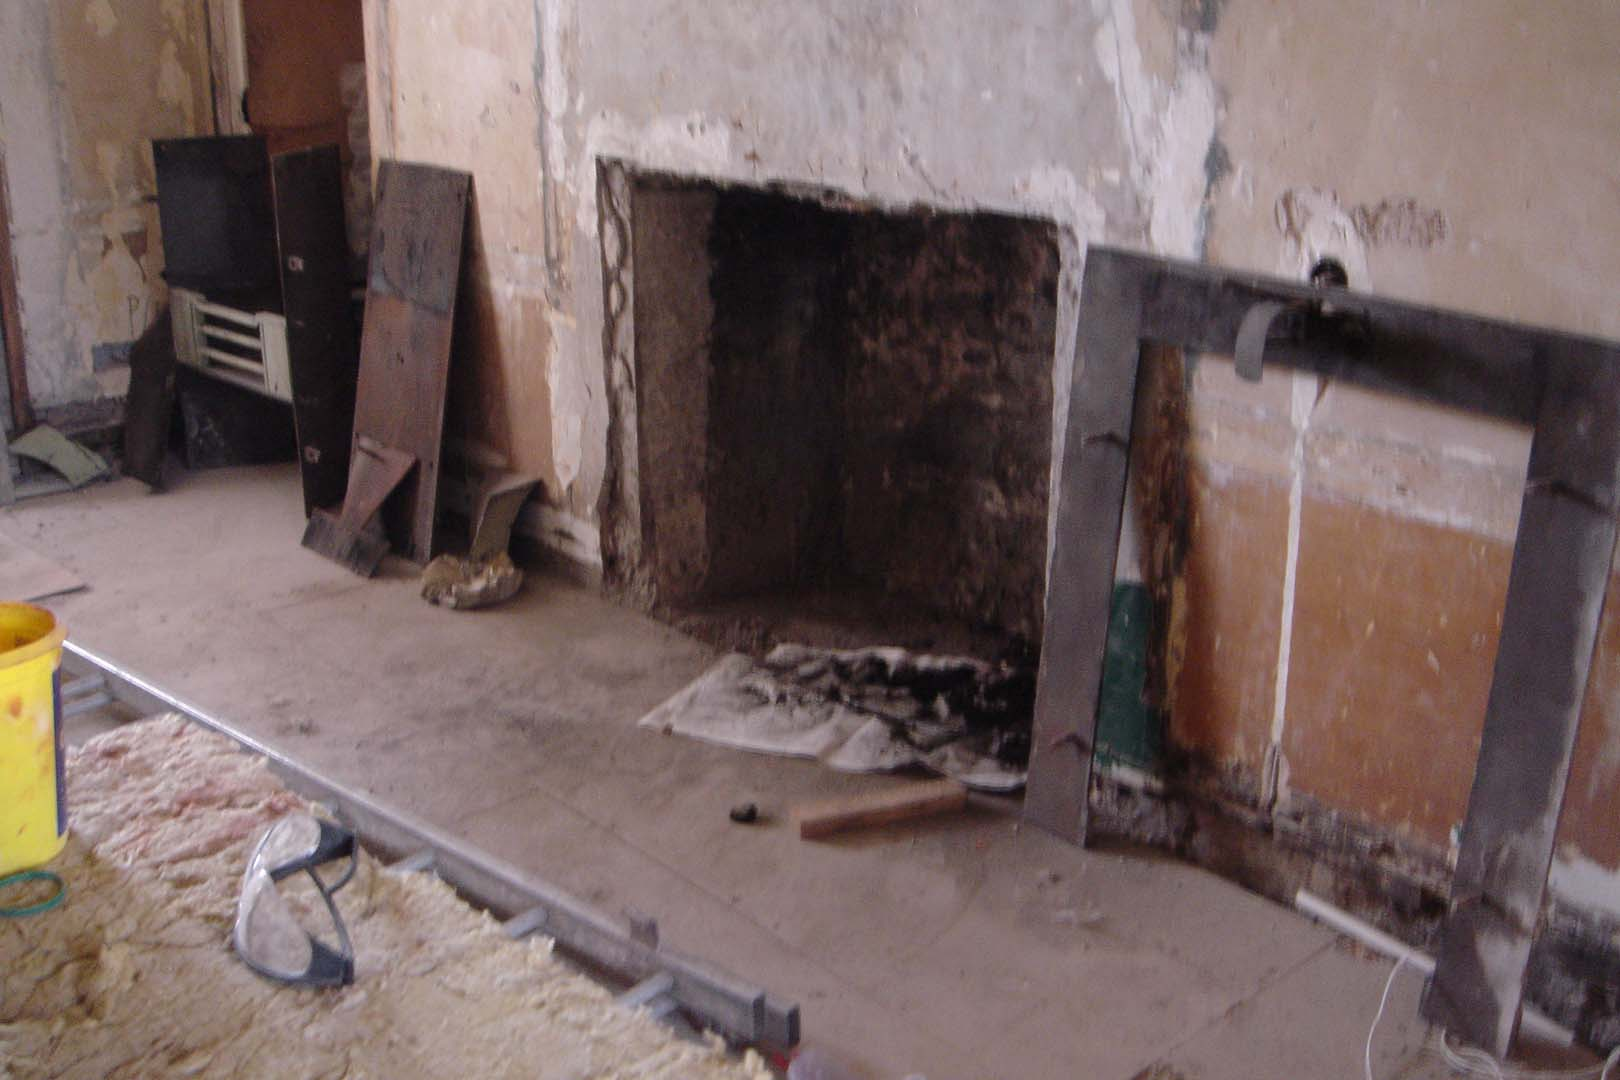 Georgian House image of fireplace and floor before restoration